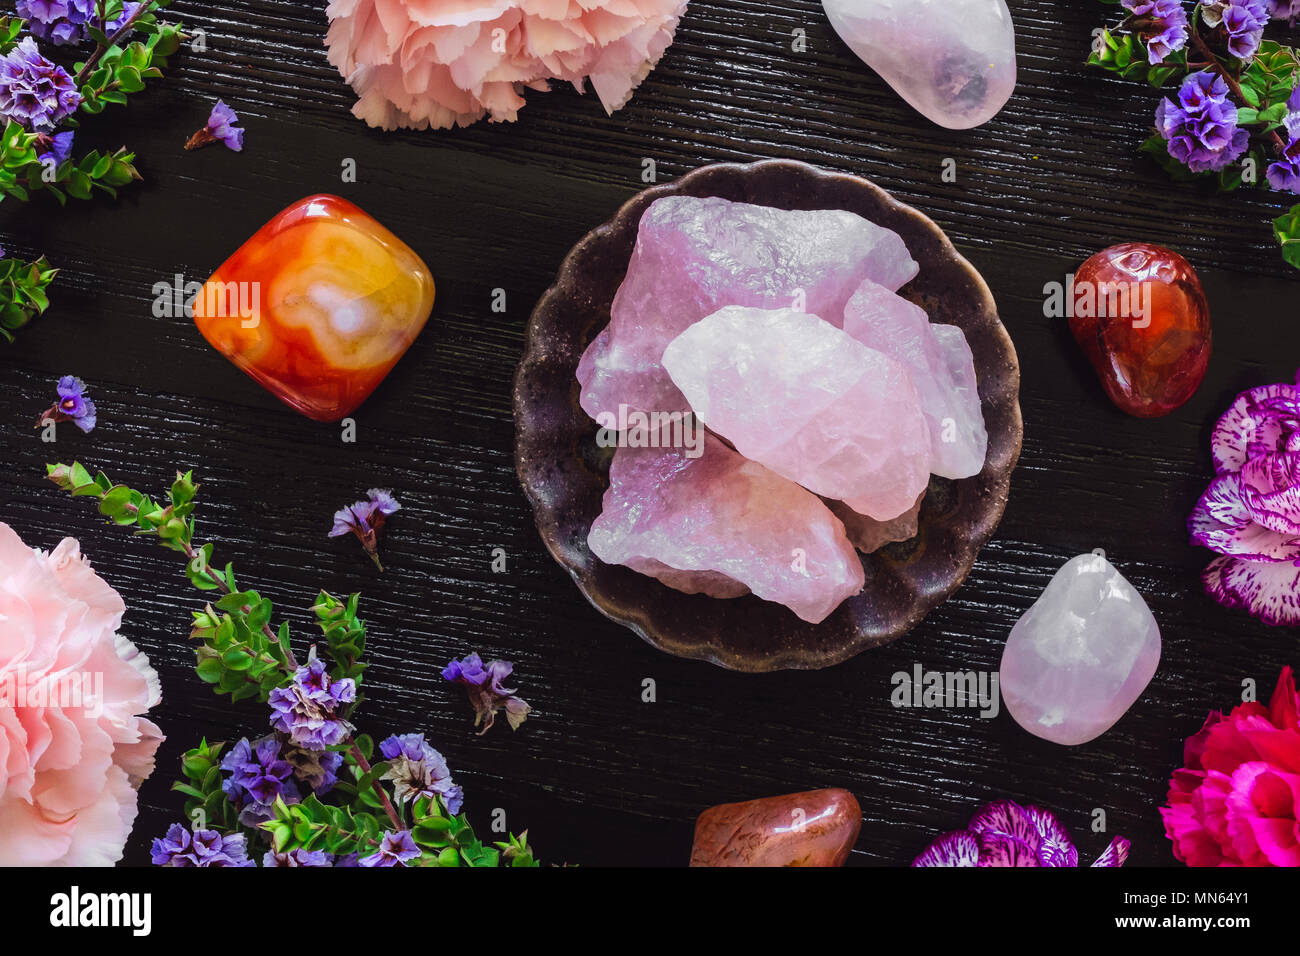 Rose Quartz and Carnelian on Dark Table with Carnations and Sea Lavender - Stock Image